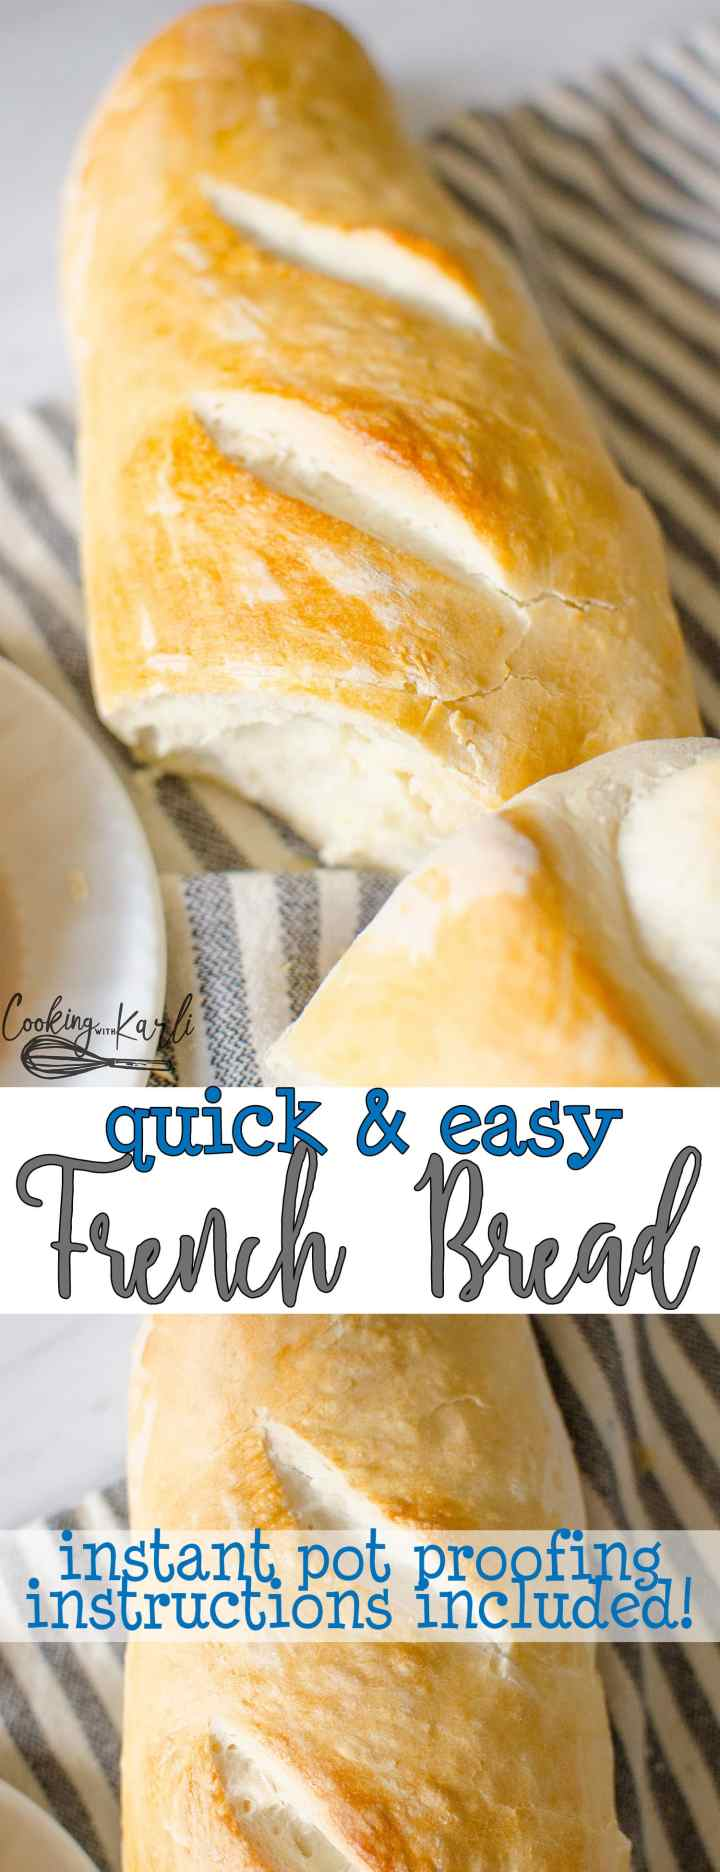 Quick & Easy French Bread has the classic chewy outer crust with a soft, chewy inside. Thanks to the Instant Pot, two beautiful loaves of French Bread are hot out of the oven in under 90 minutes! |Cooking with Karli| #frenchbread #proofing #instantpot #easy #fast #yeast #recipe